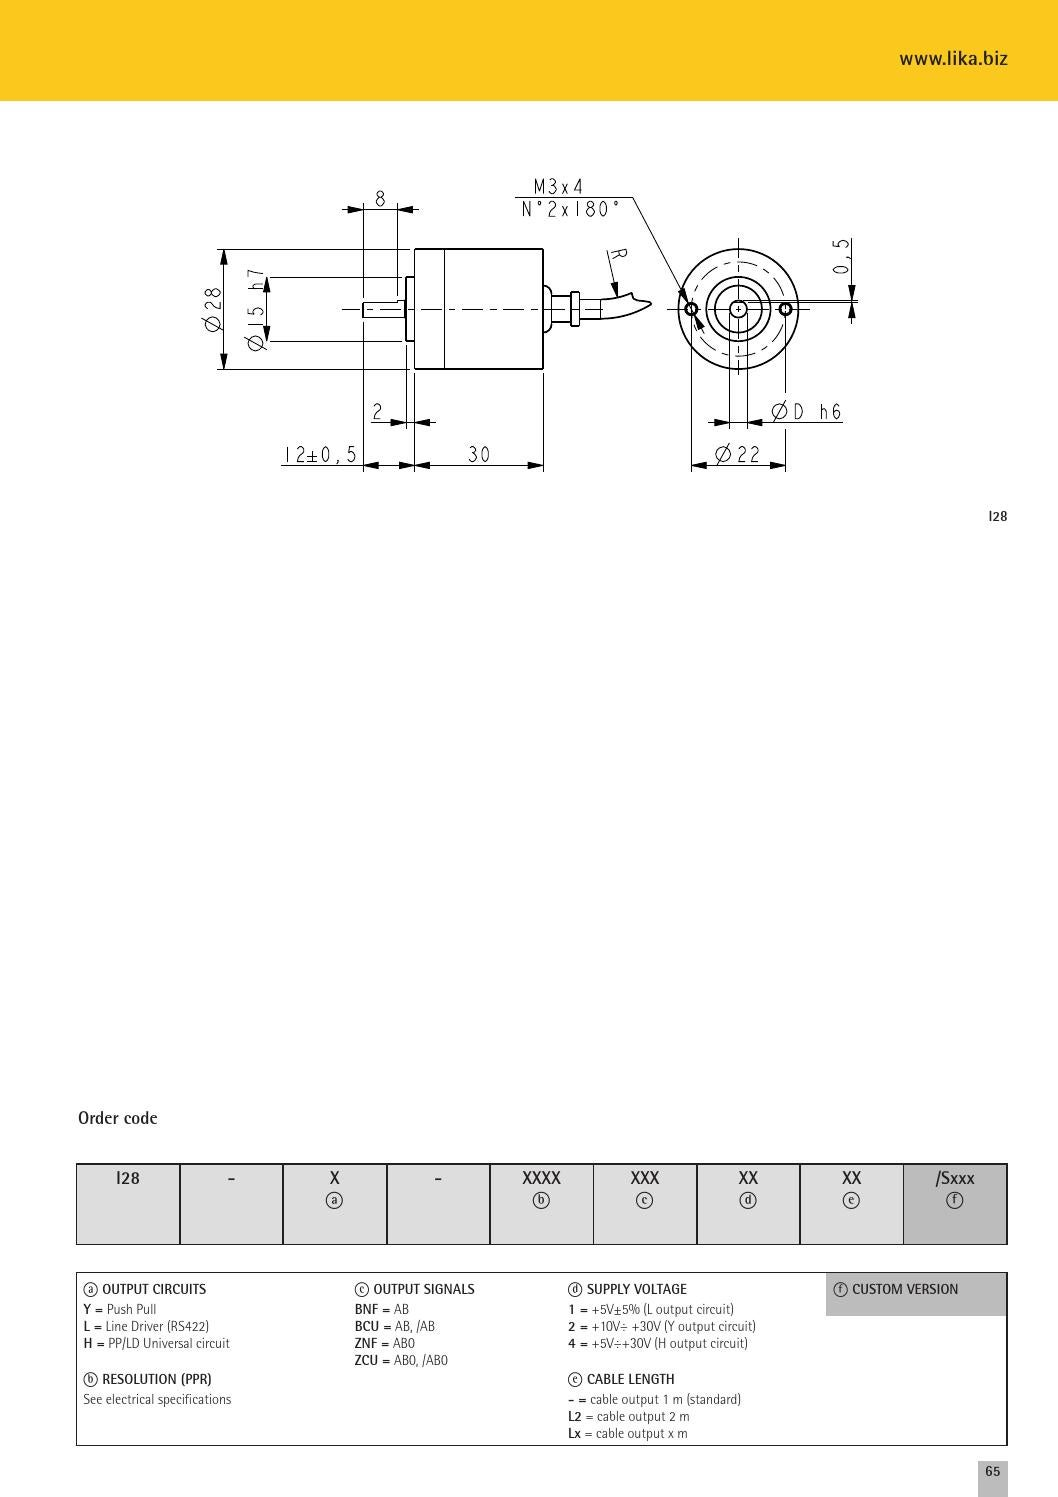 Lika Electronic incremental and absolute rotary encoders ... on thermocouple schematic, rotary potentiometer schematic, buzzer schematic, load cell schematic, plc schematic, pcb schematic, switch schematic, lvdt schematic, temperature controller schematic, push button schematic, rotary valve schematic, terminal block schematic, transducer schematic, rotary converter schematic, thermistor schematic, tachometer schematic, servo motor schematic, control schematic, rotary transformer schematic, programmable logic controller schematic,